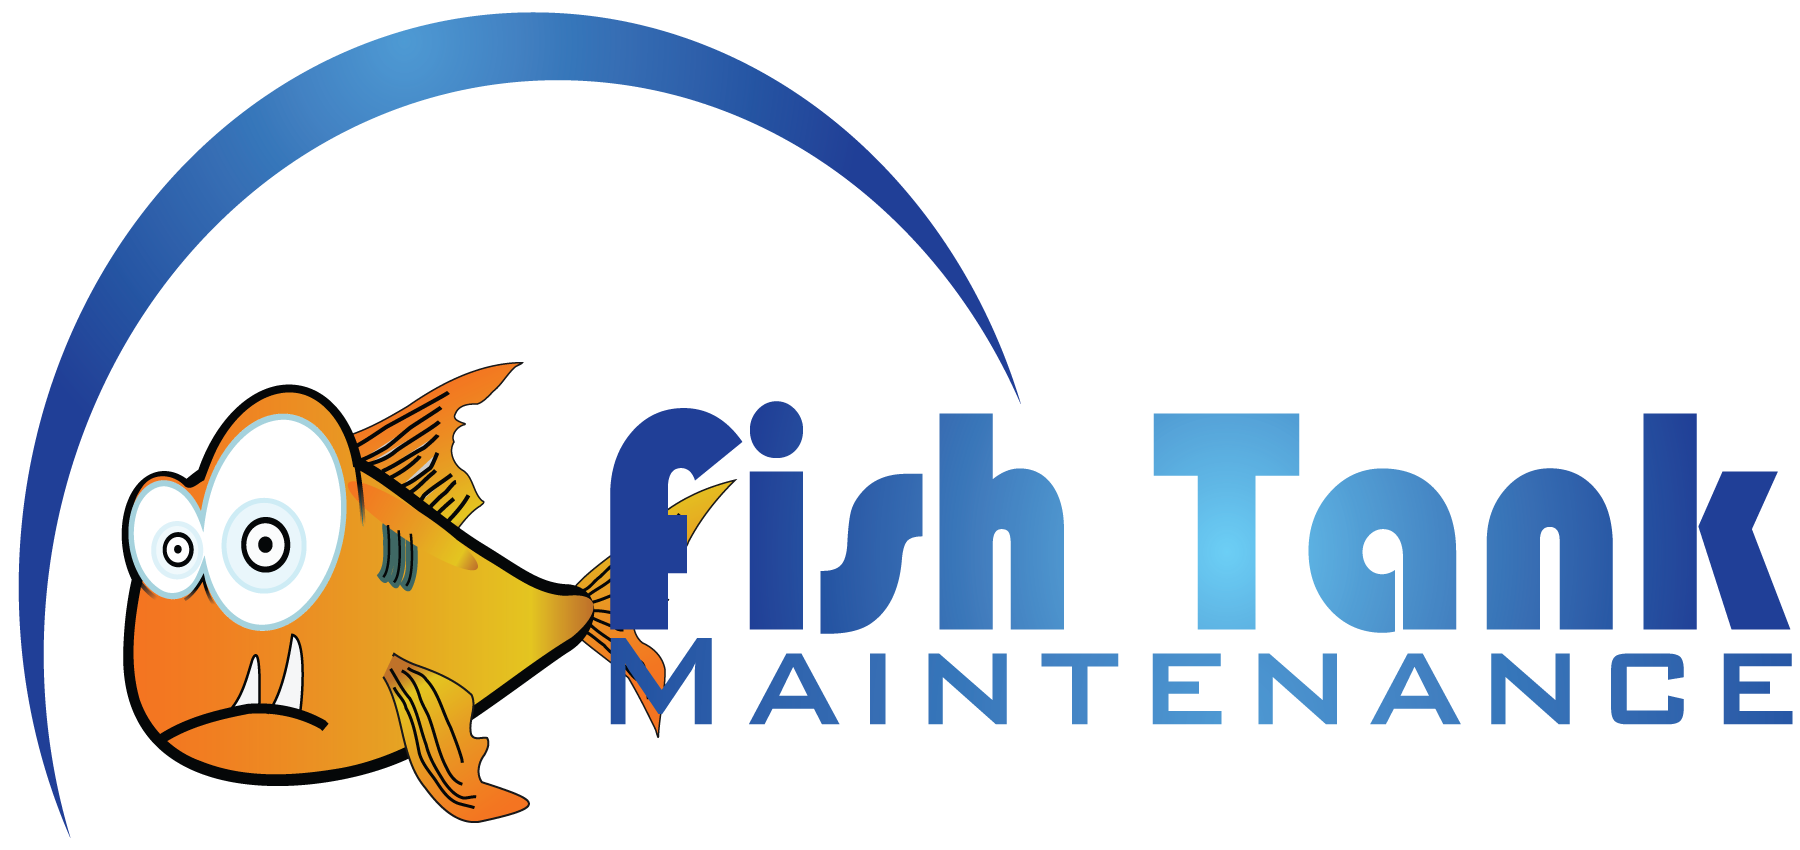 Freshwater fish tank upkeep - Fish Tank Maintenance For Your Home Or Business In The Saint Louis Area